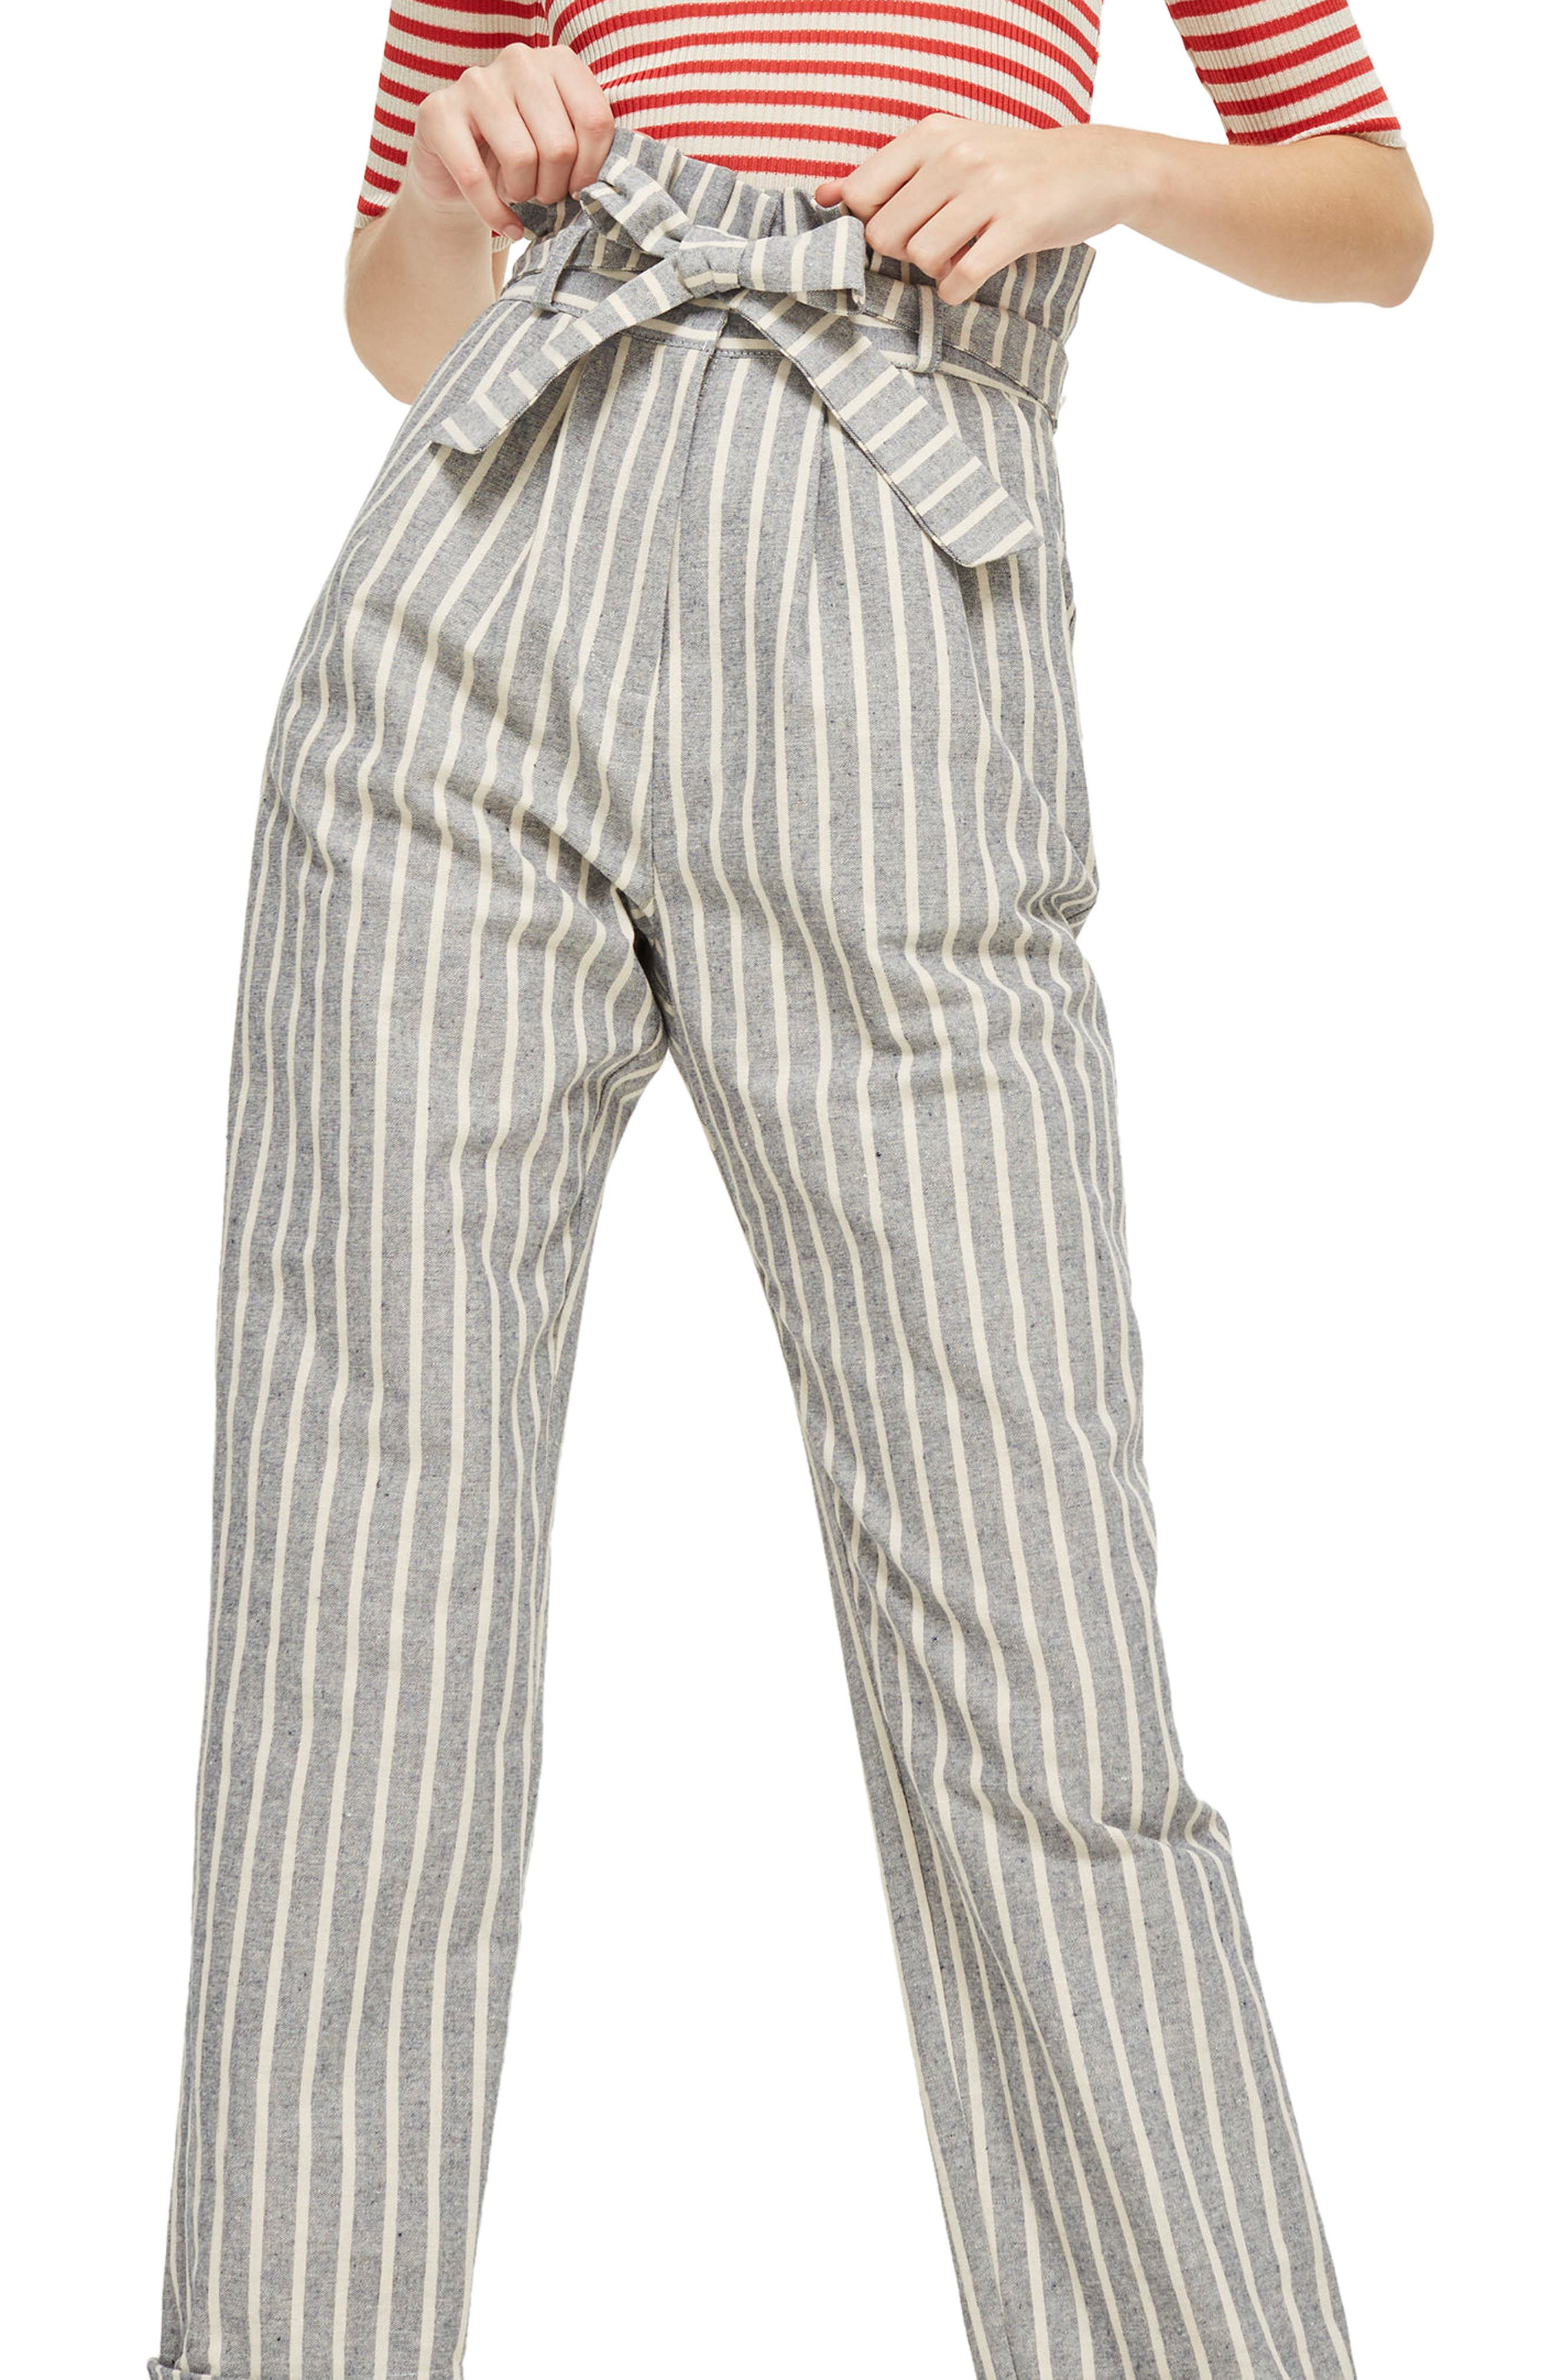 Belted Stripe Roll-Cuff Trousers,                             Alternate thumbnail 3, color,                             400